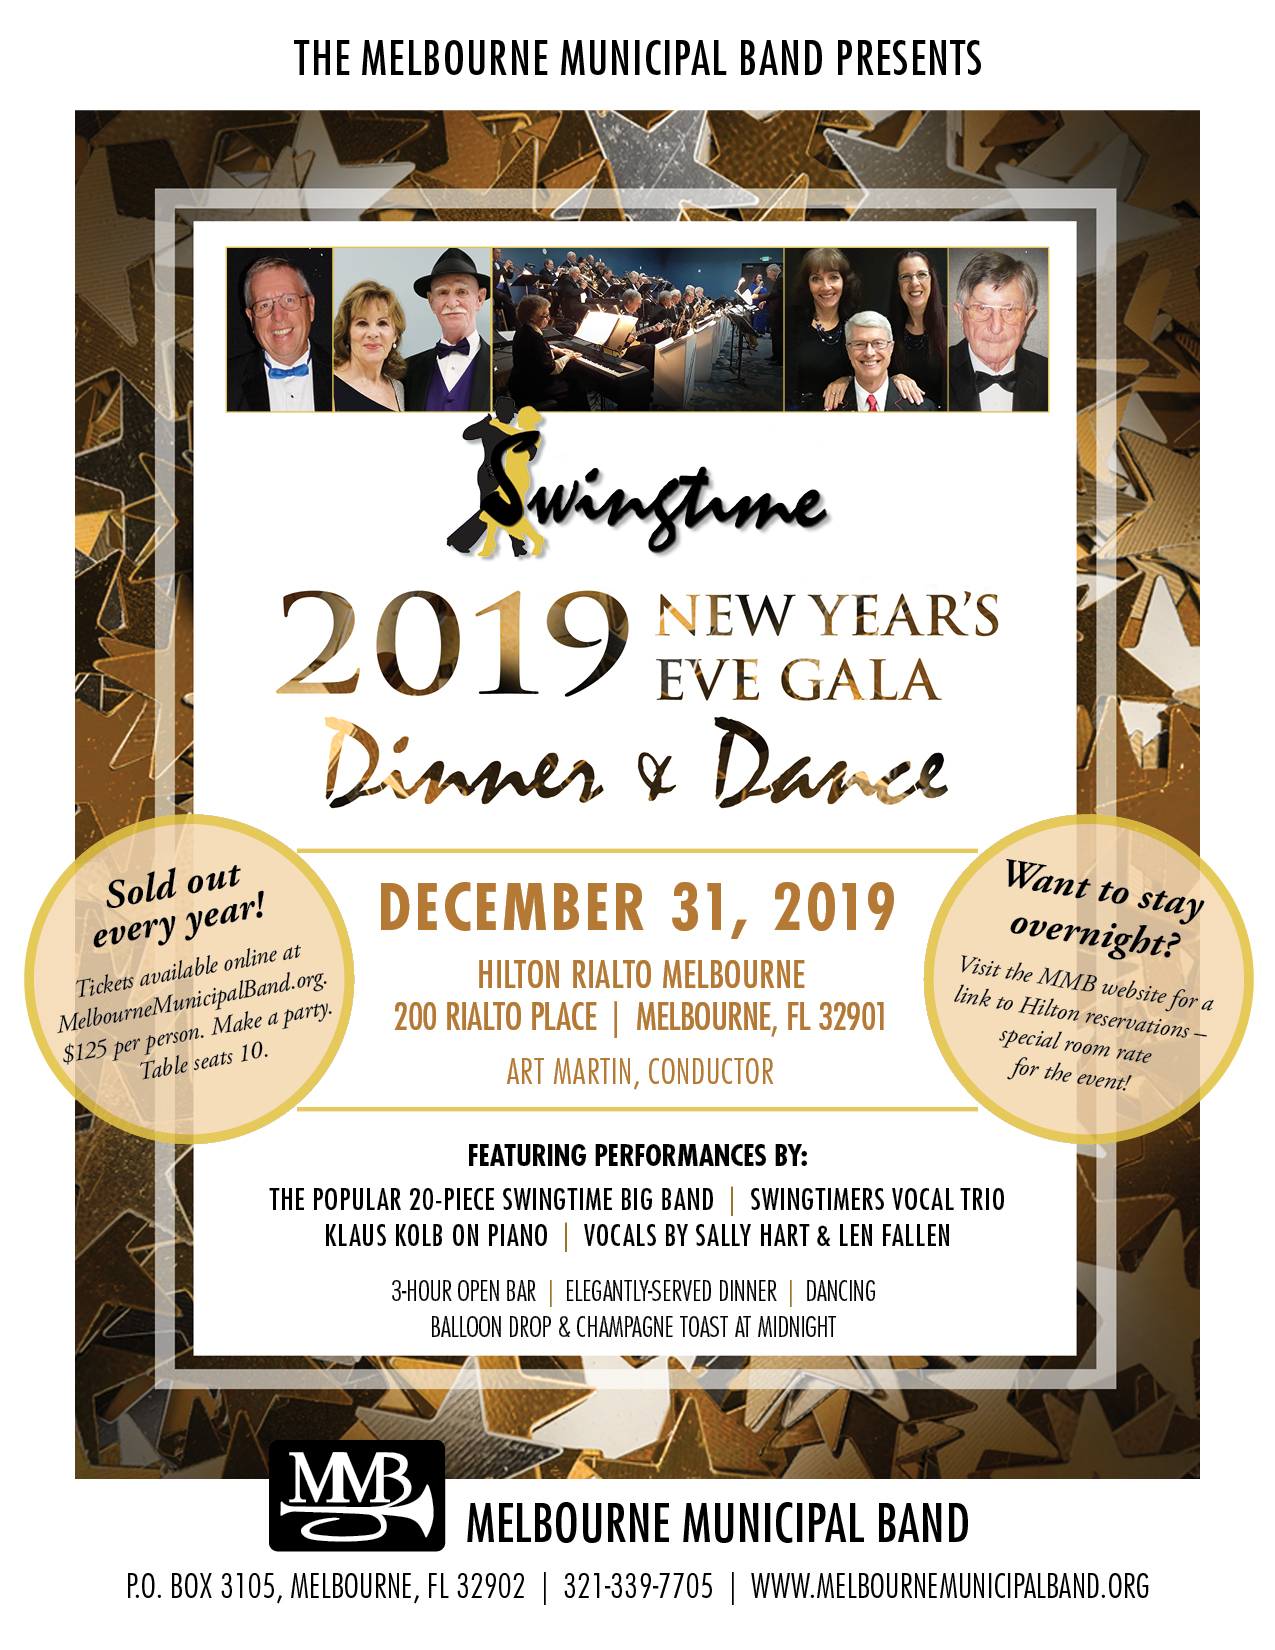 2019 New Year's Eve Gala presented by The Melbourne Municipal Band